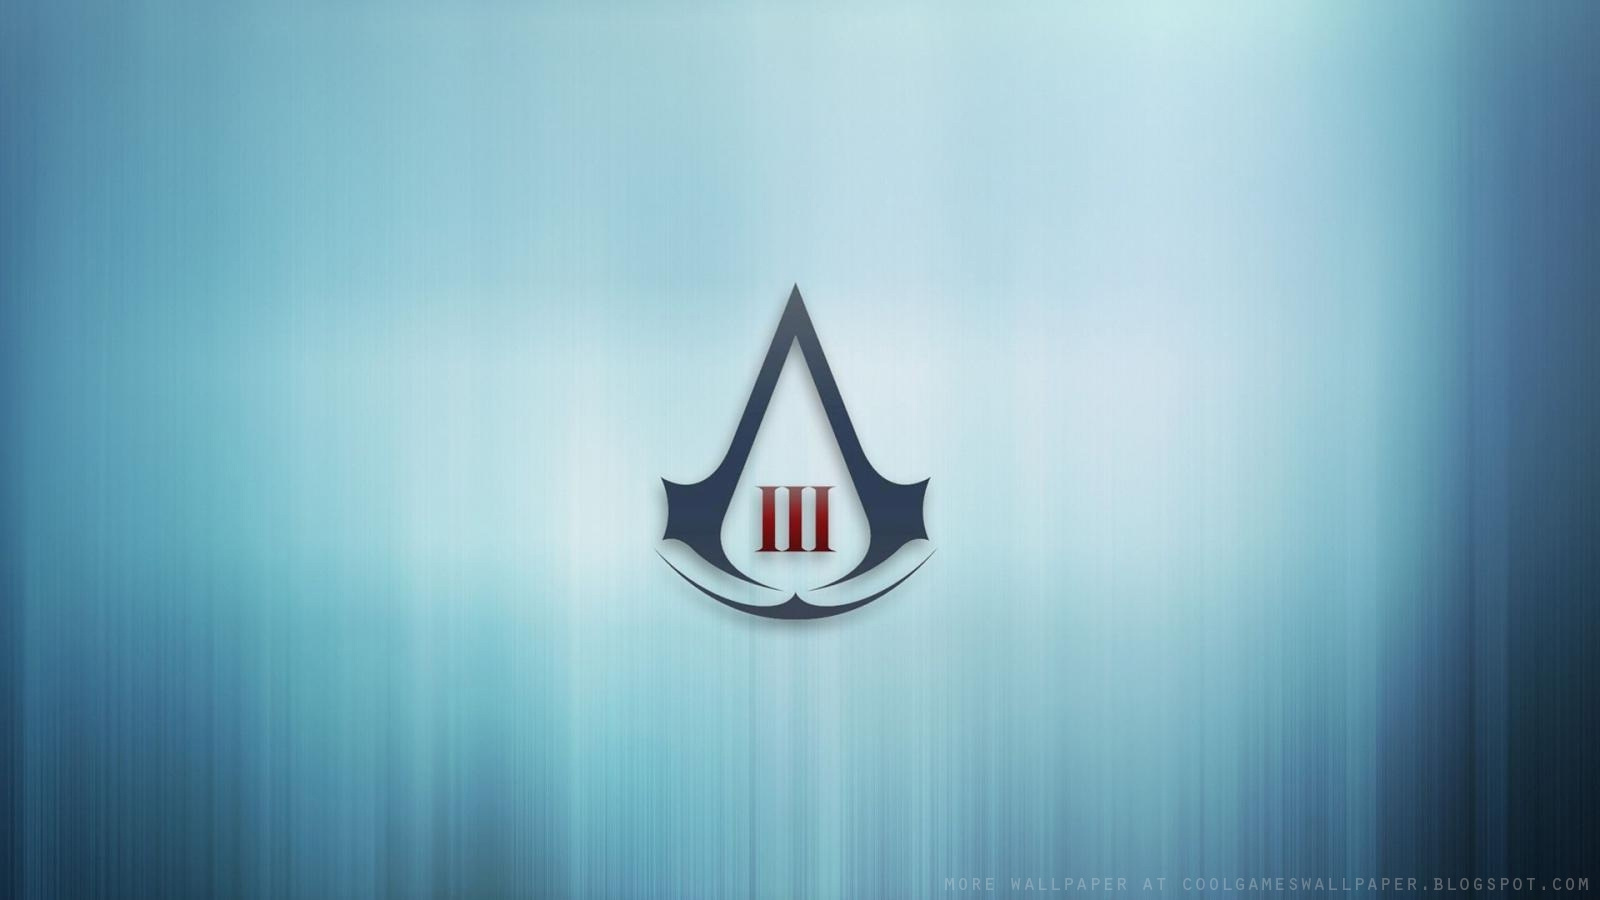 assassin's creed 3 logo wallpaper - cool games wallpaper